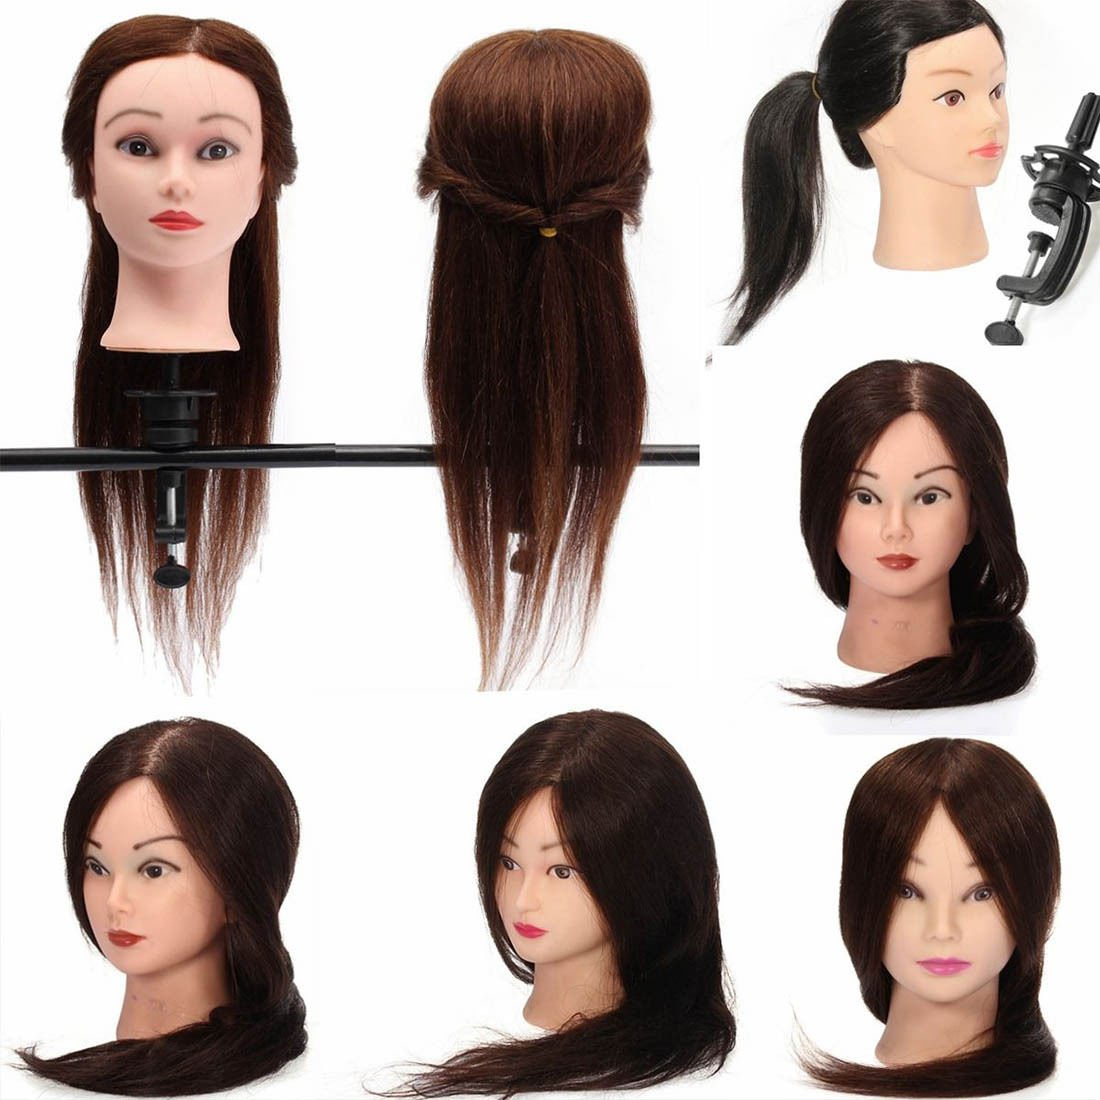 100 real hair hairdressing salon practice training head for Actual beauty salon